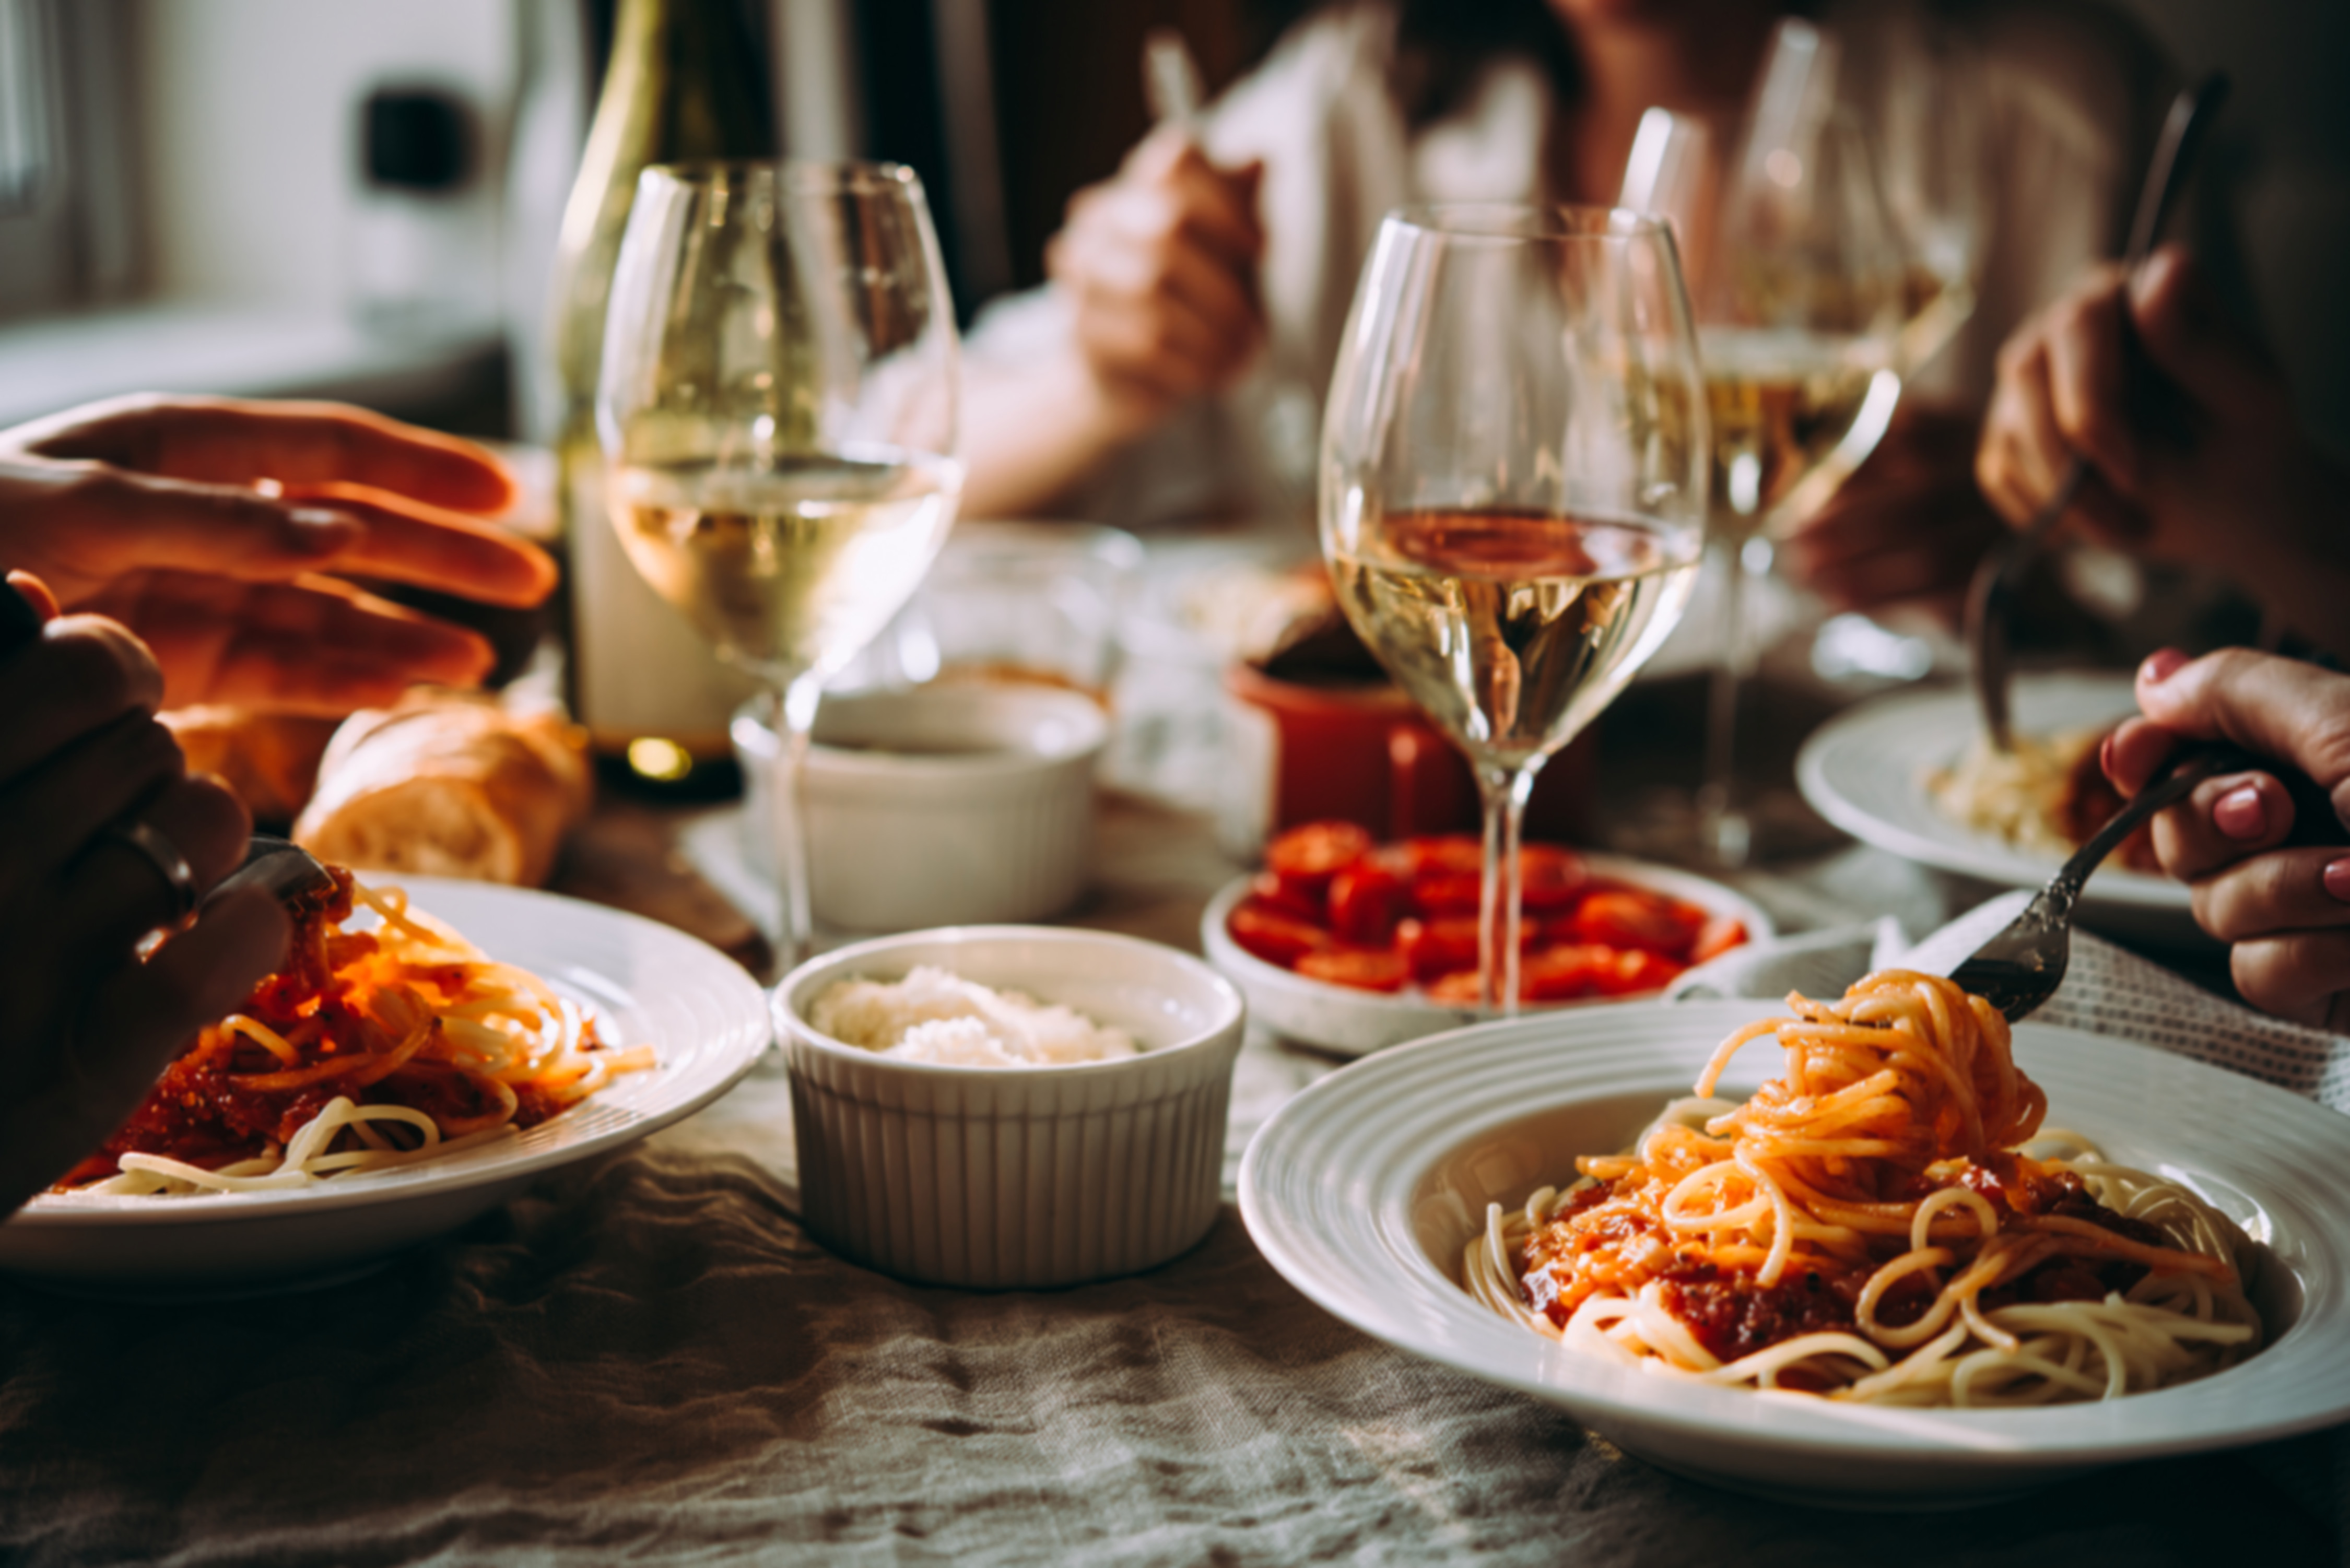 Enjoy four course small plate farm-to-table seasonal lunch paired with wine tasting